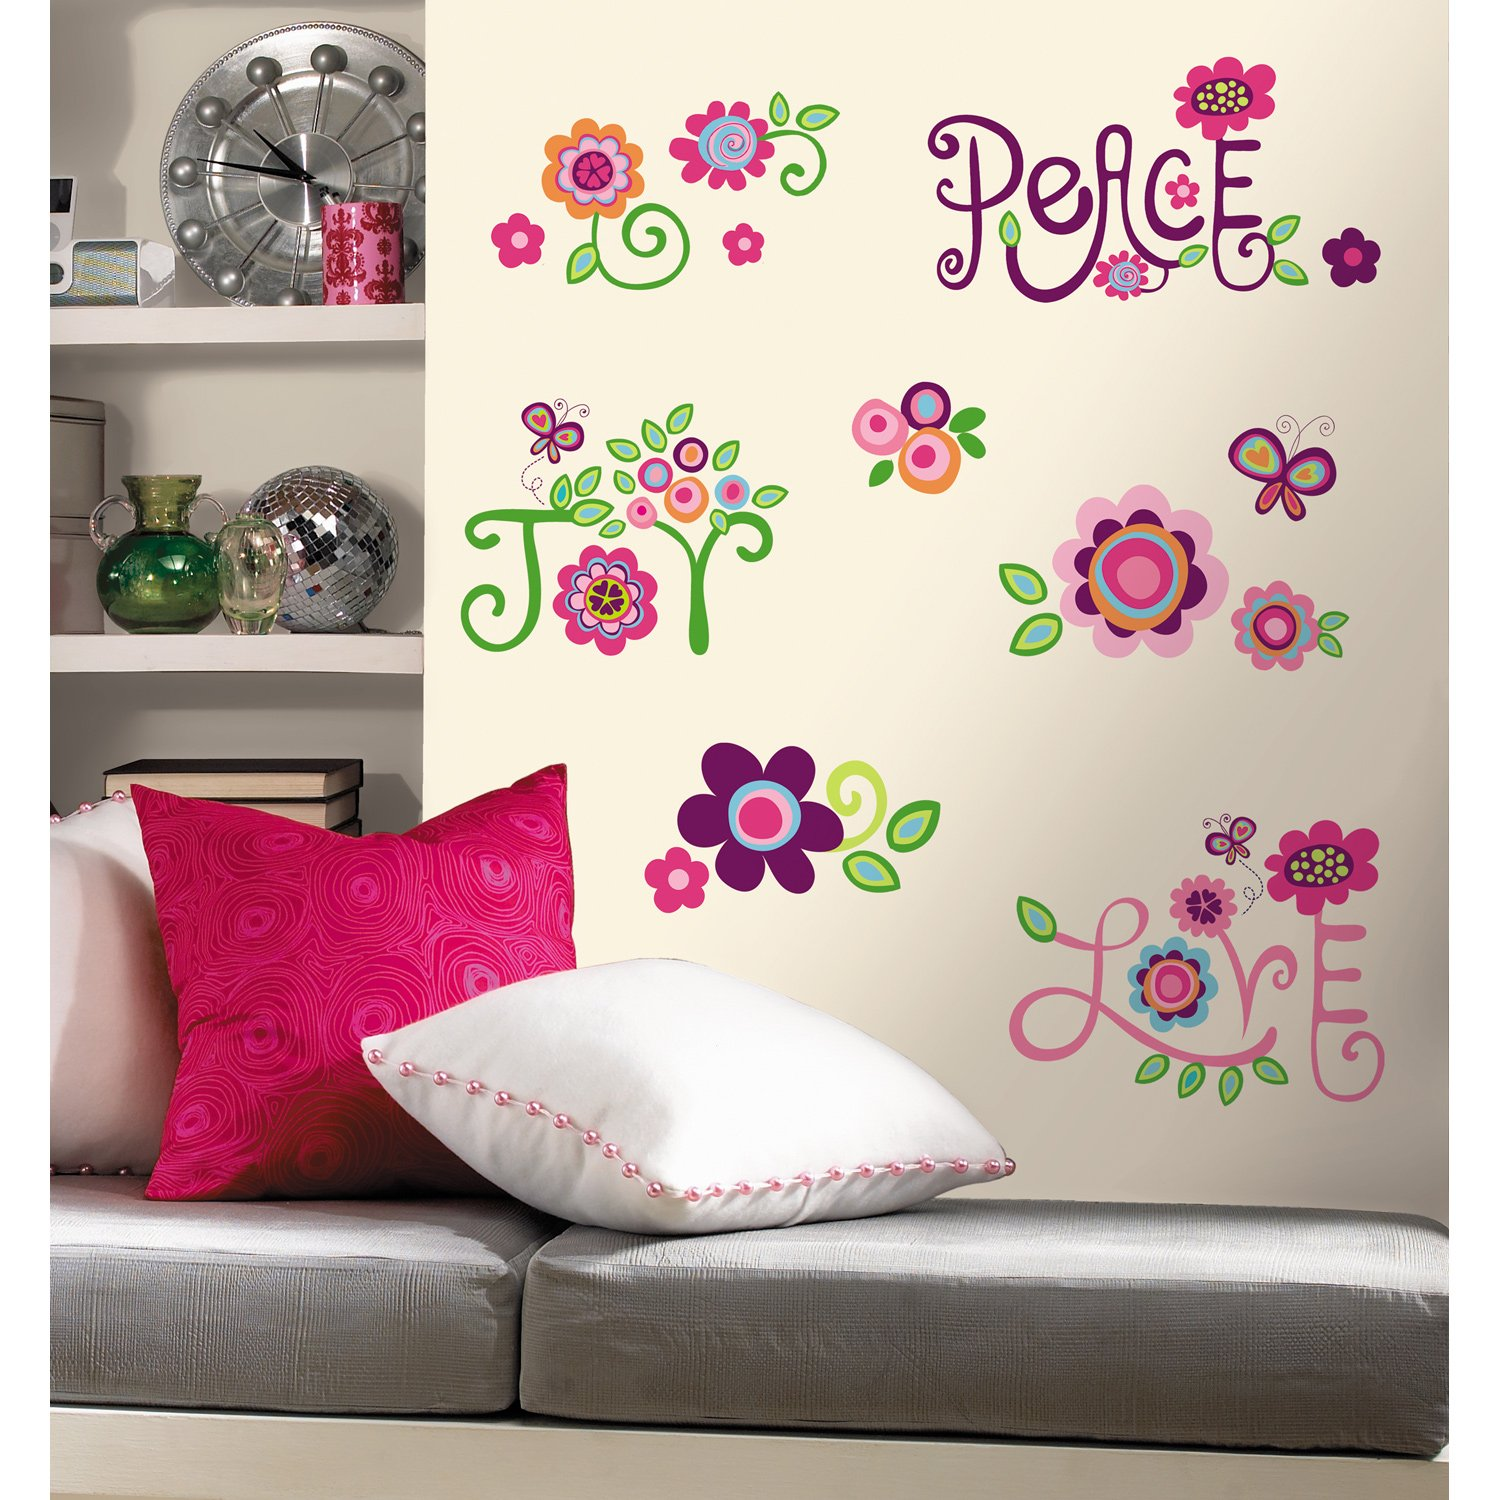 Roommates rmk1649scs love joy peace peel stick wall decals roommates rmk1649scs love joy peace peel stick wall decals wall decor stickers amazon amipublicfo Gallery